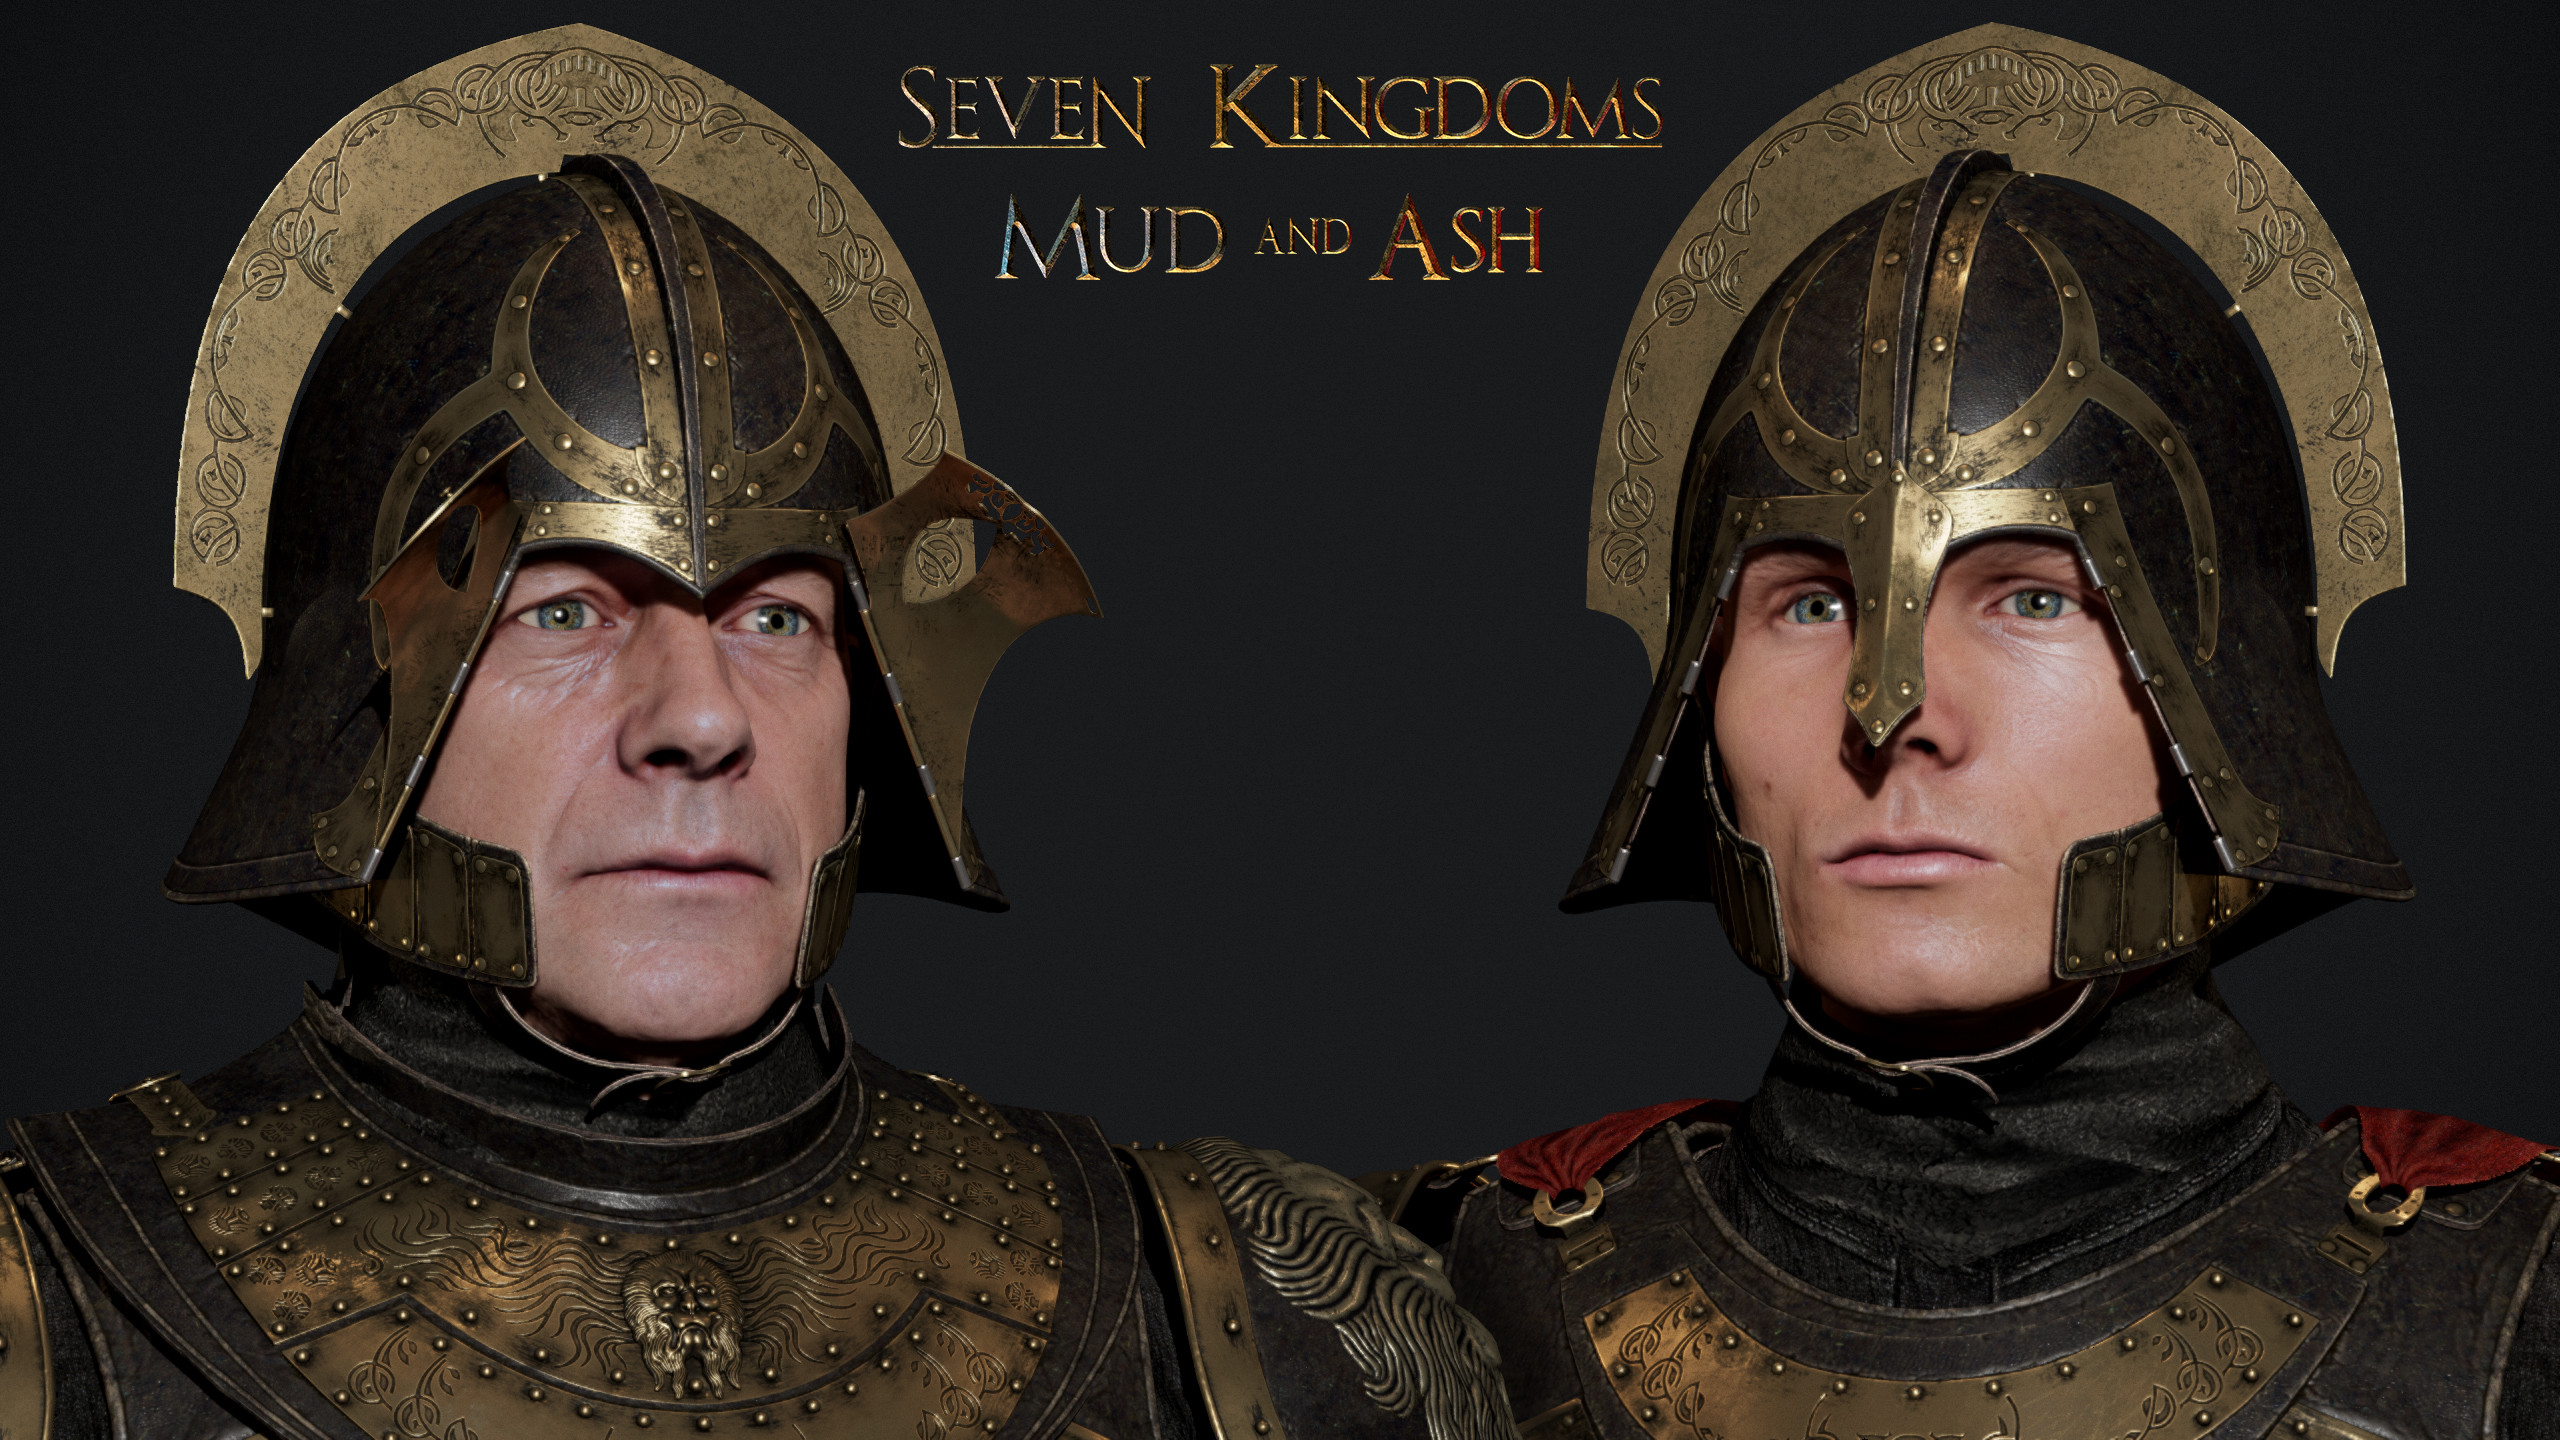 Helmet has two variants. The one visors  was based on design from earlier seasons. The lighter one can be seen in later seasons.